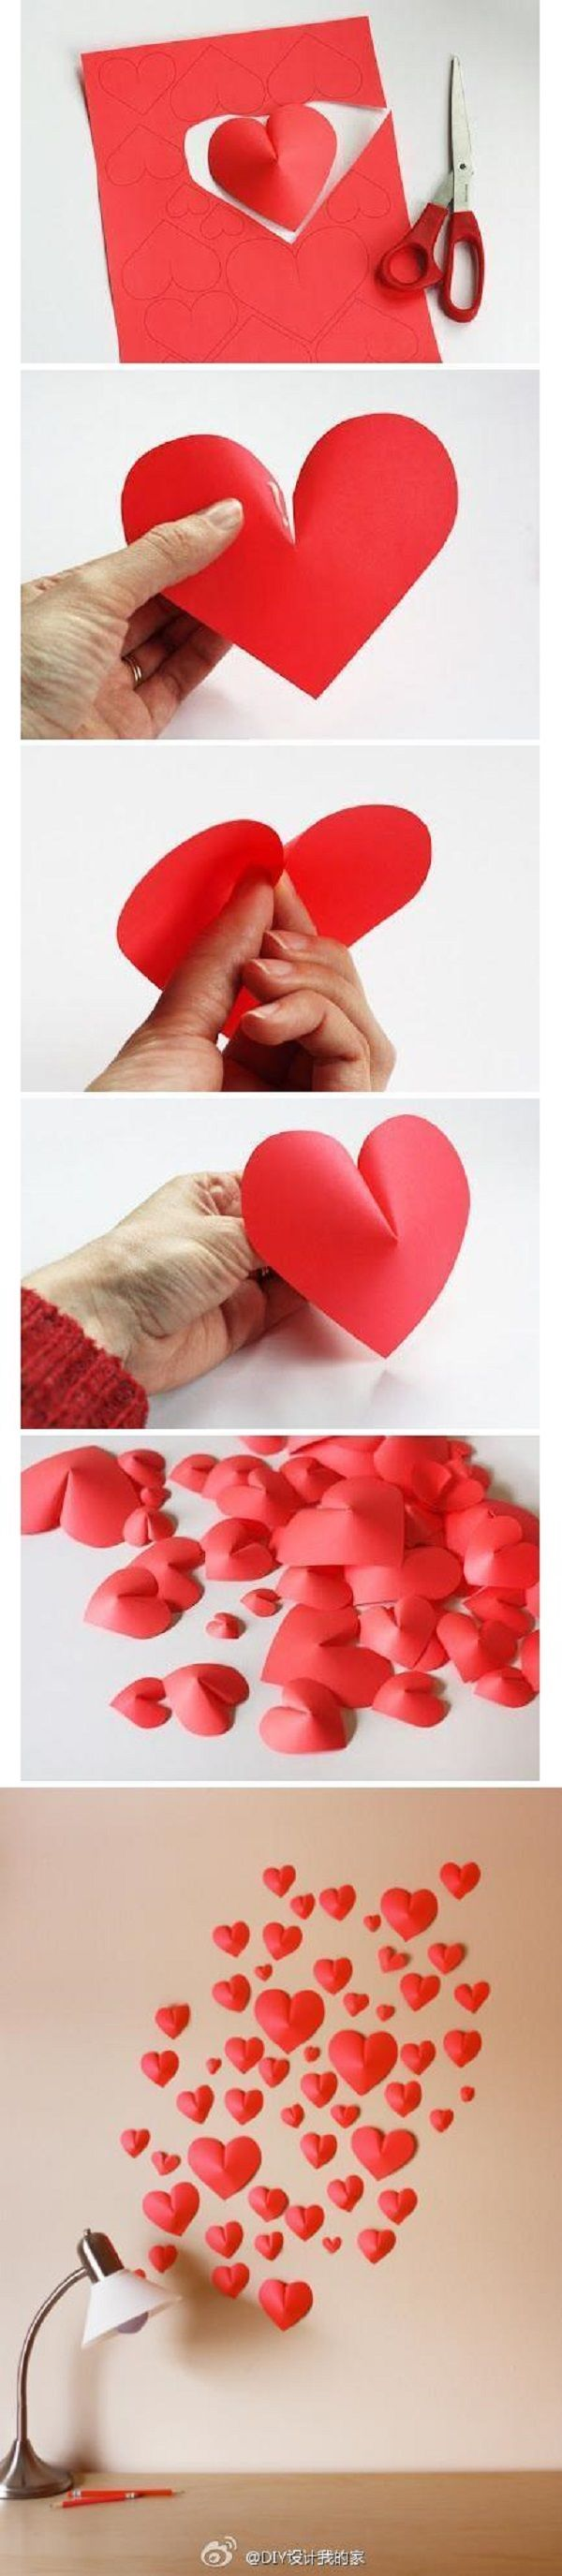 Diy easy 3d paper heart craft ideas paper pinterest for Easy heart crafts